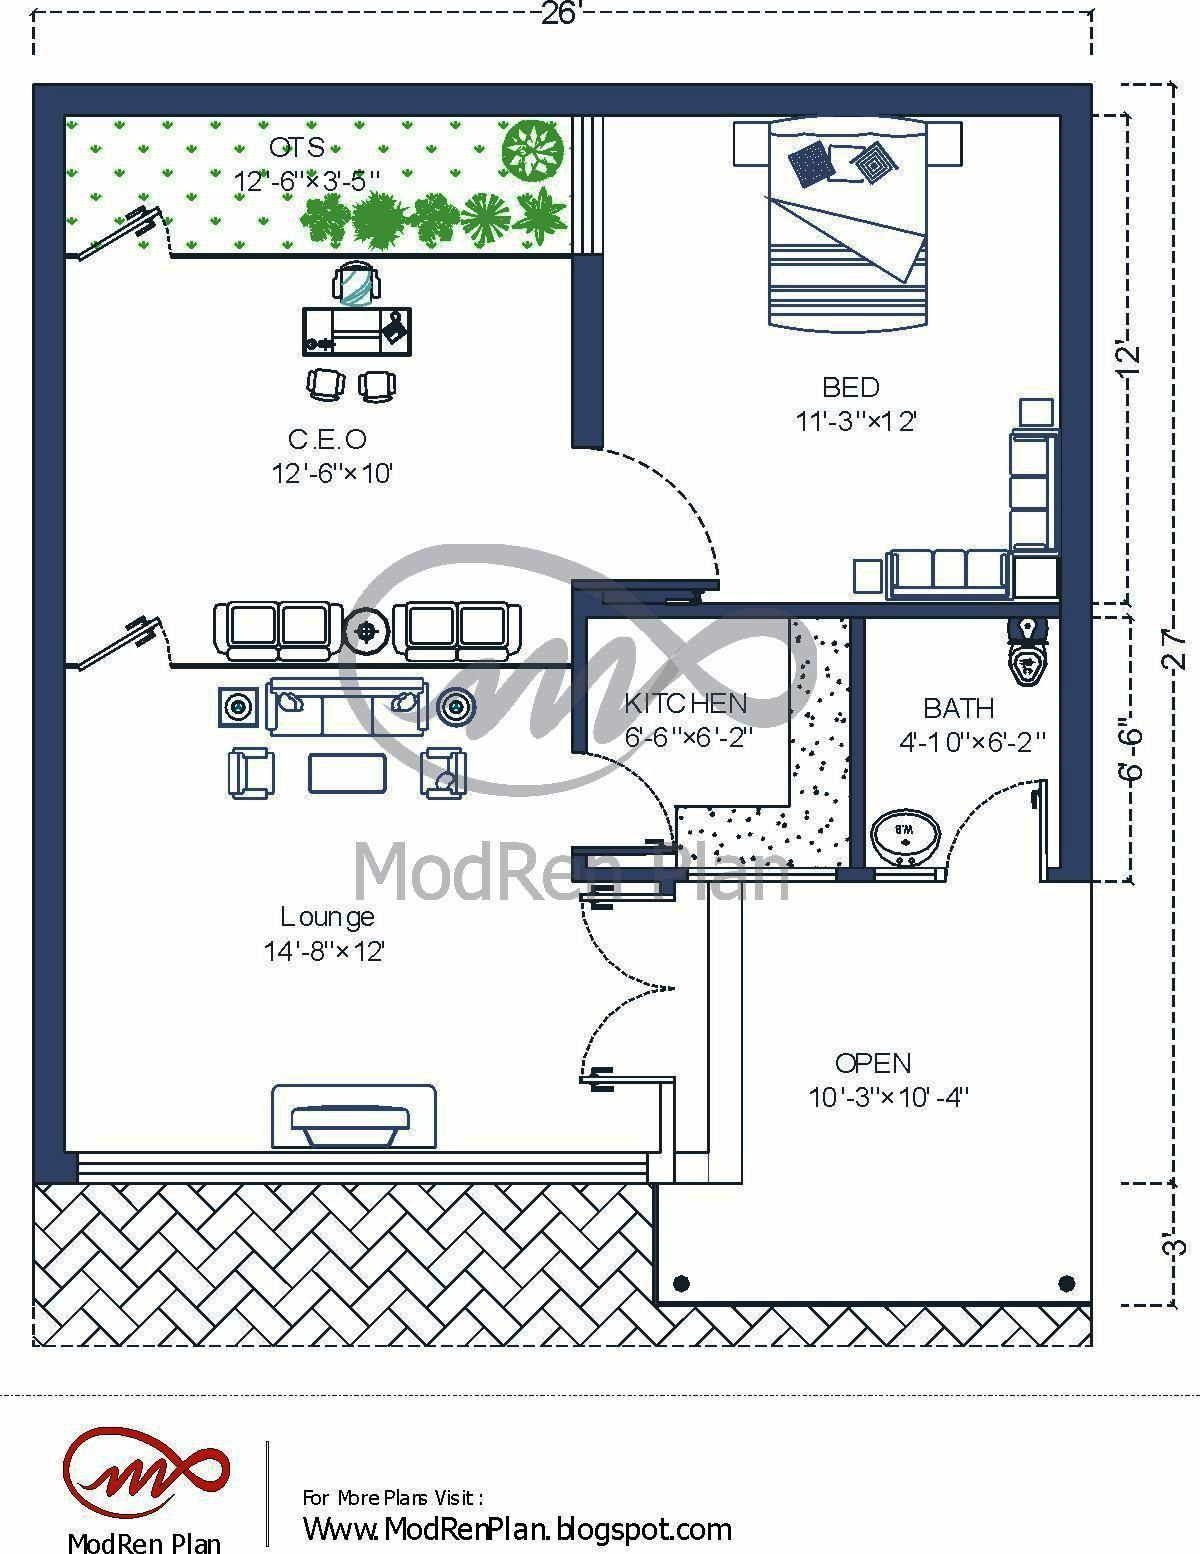 STUNNING HOME OFFICE IDEAS WITH WORKING PLAN | Homeplan | Pinterest ...